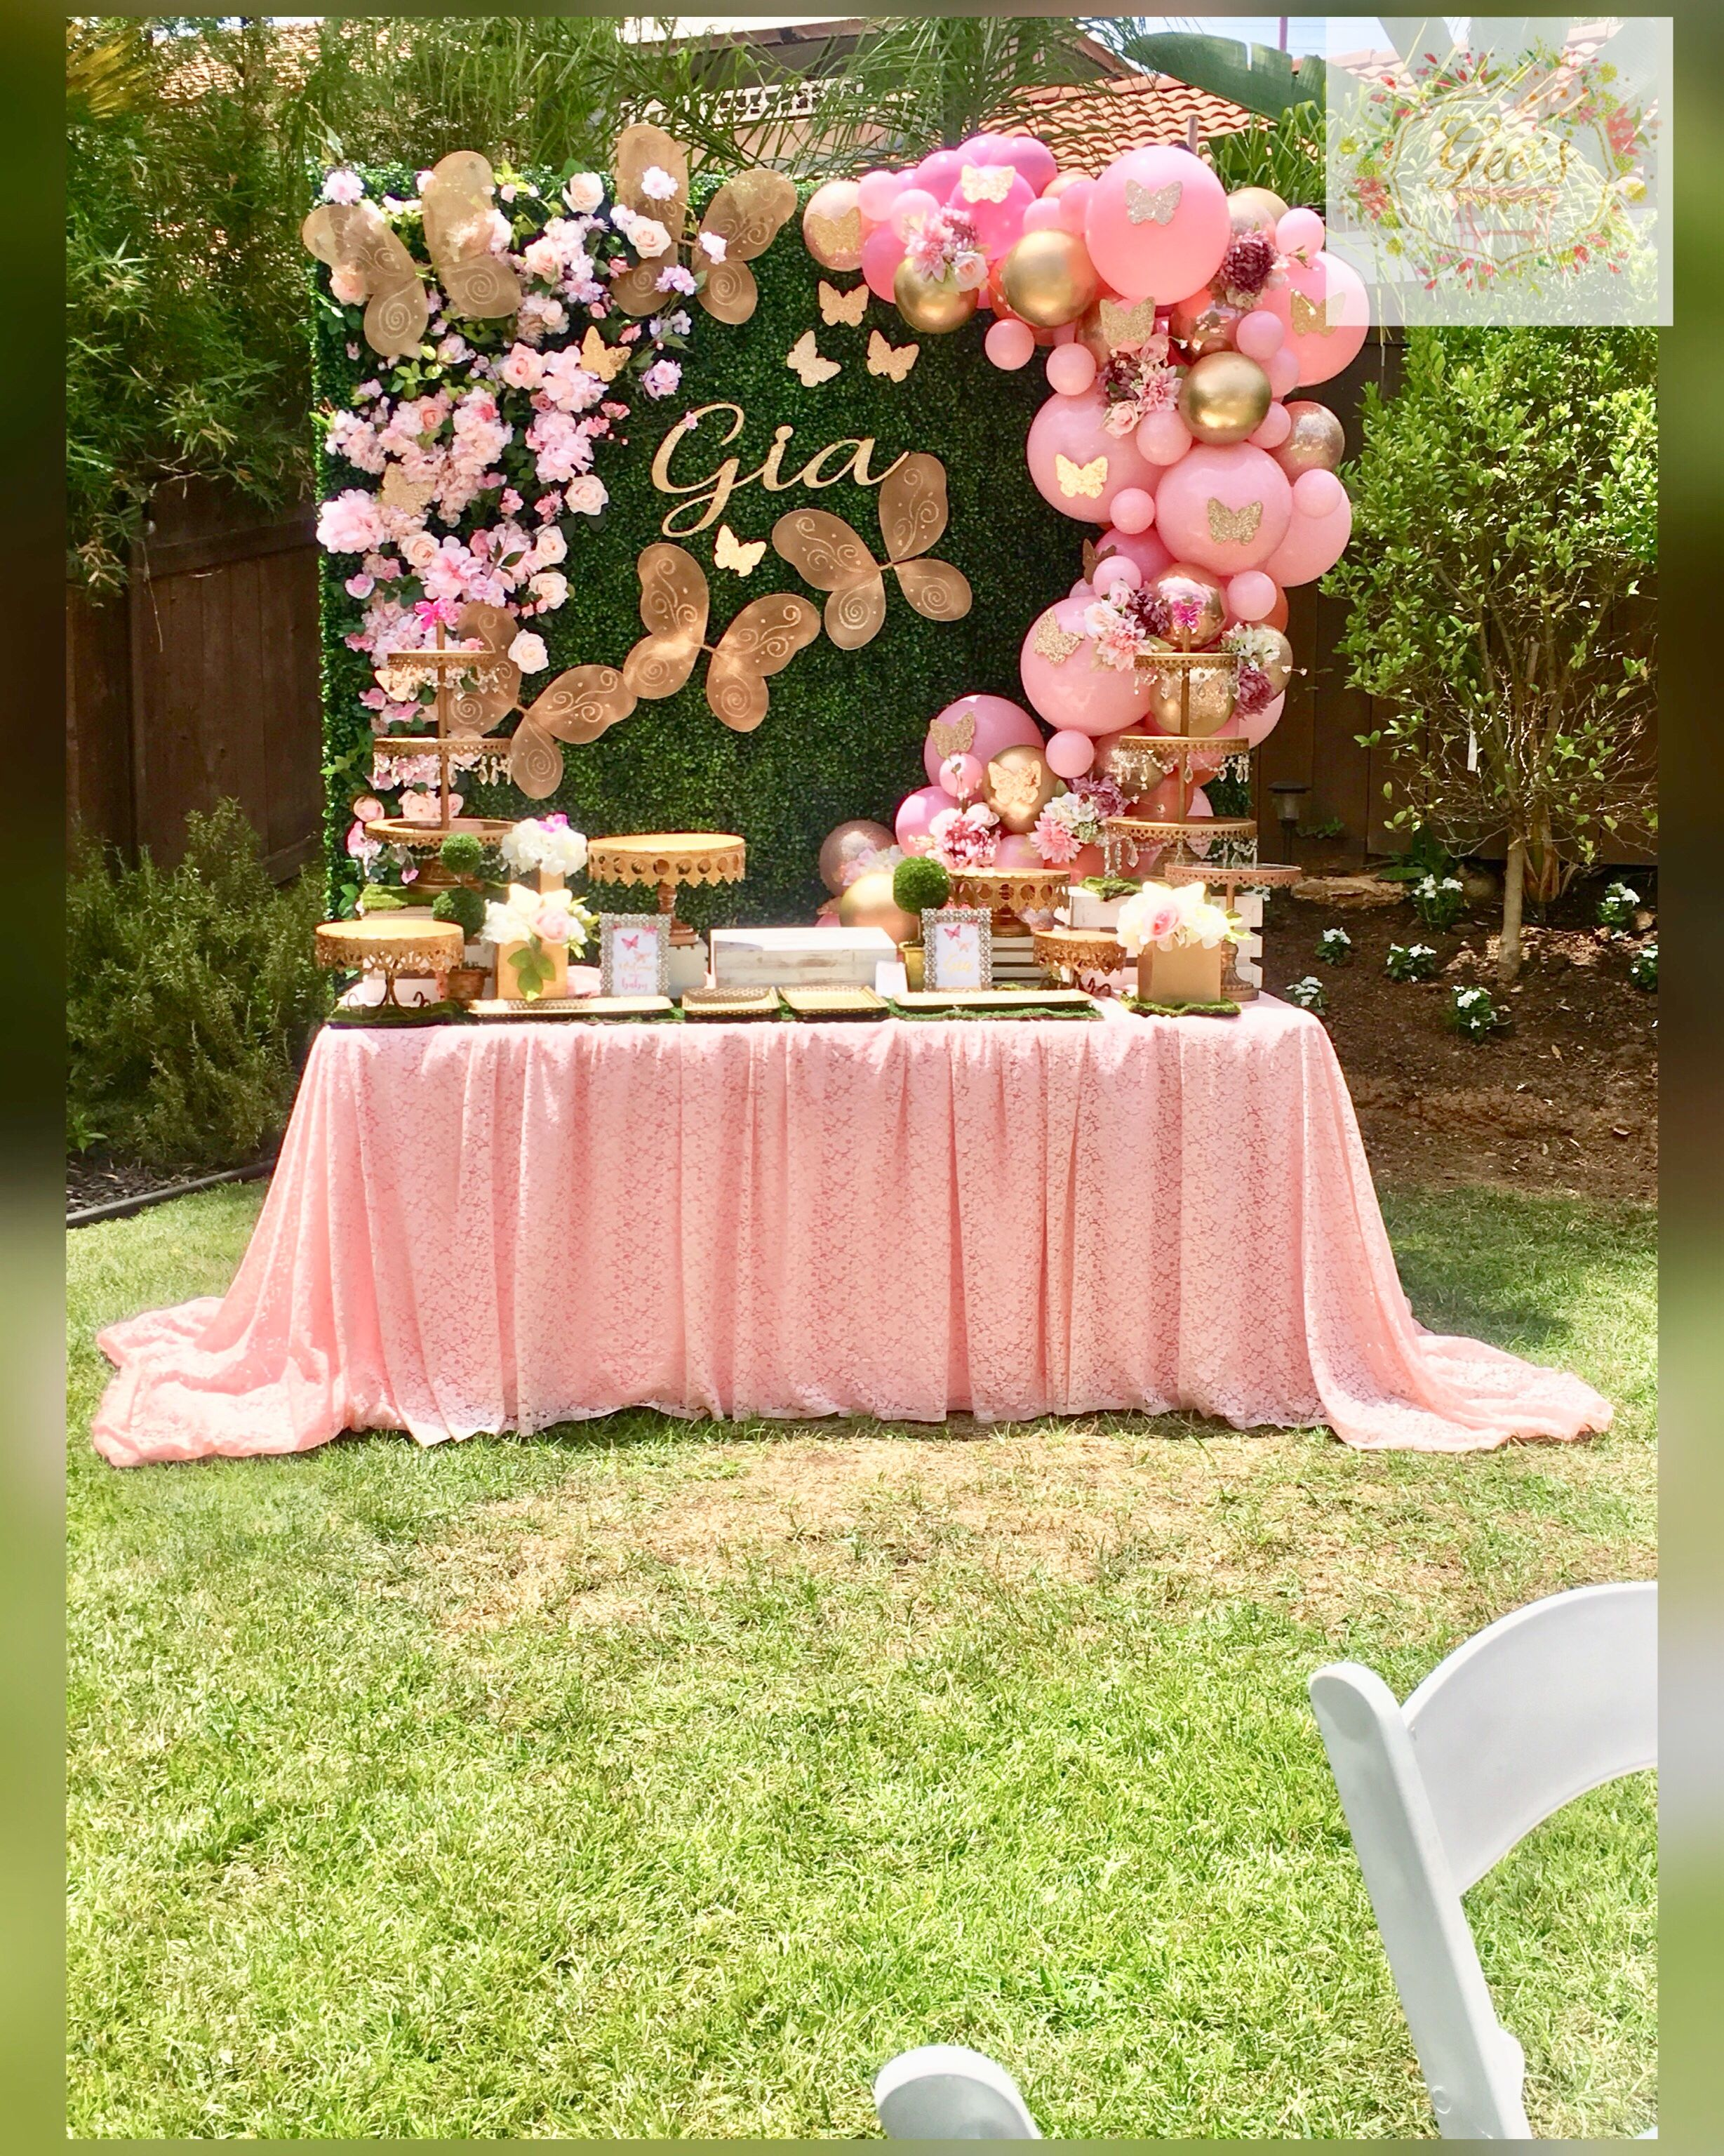 Baby Shower Picture Ideas : shower, picture, ideas, Butterfly, Shower, Ideas!, Shower,, Decorations,, Garden, Showers